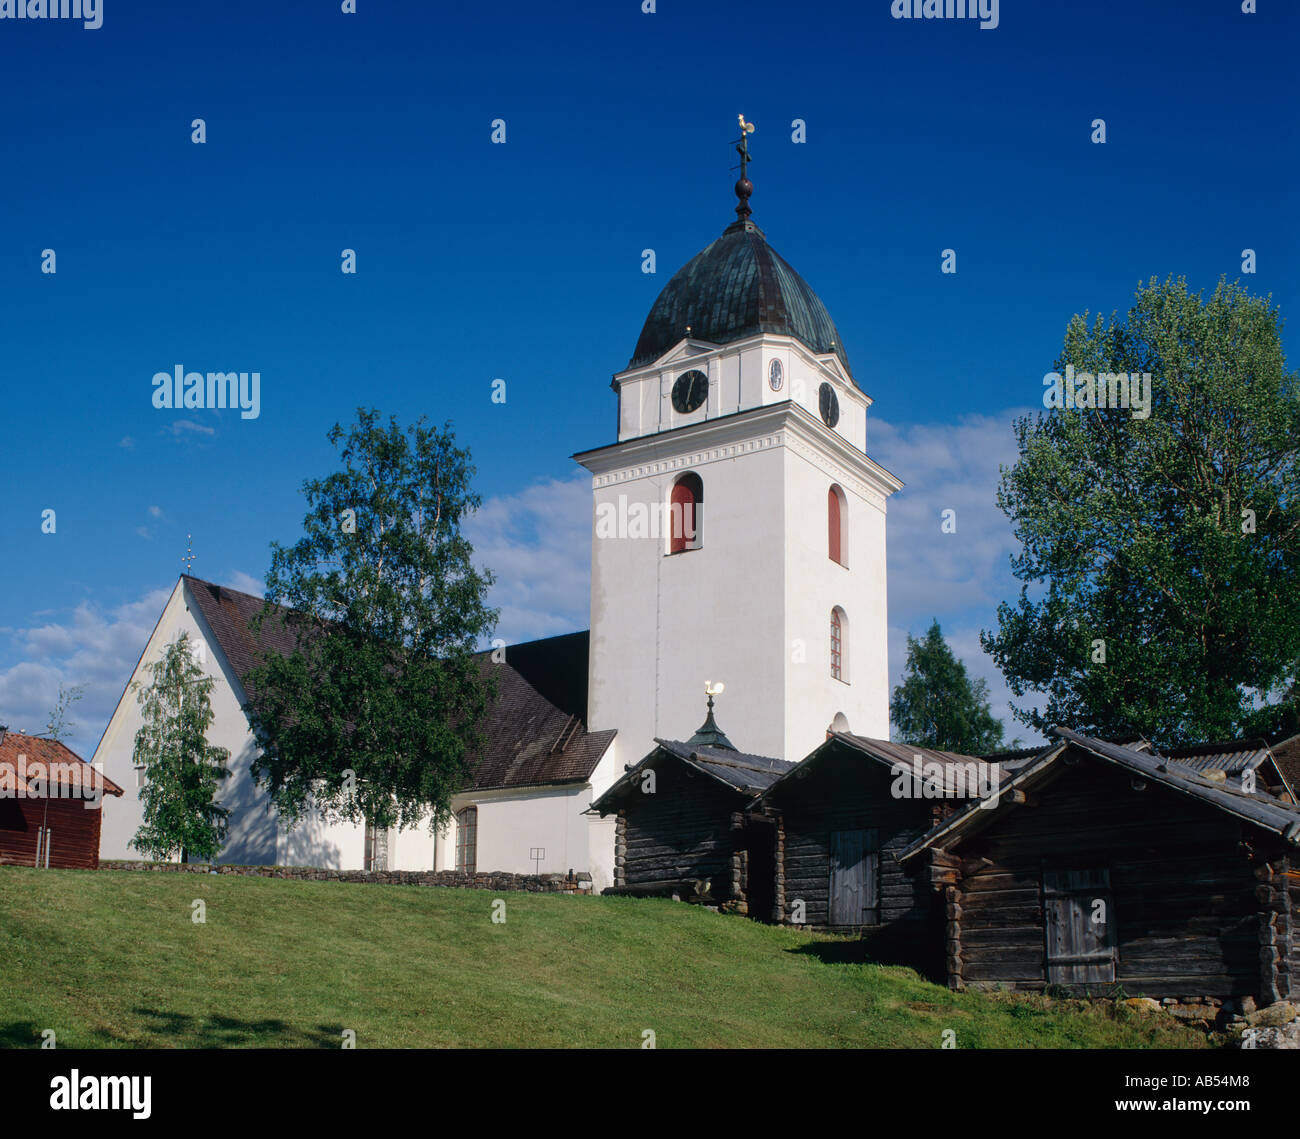 Rattvik Church and Horse Stables Rattvik Sweden - Stock Image